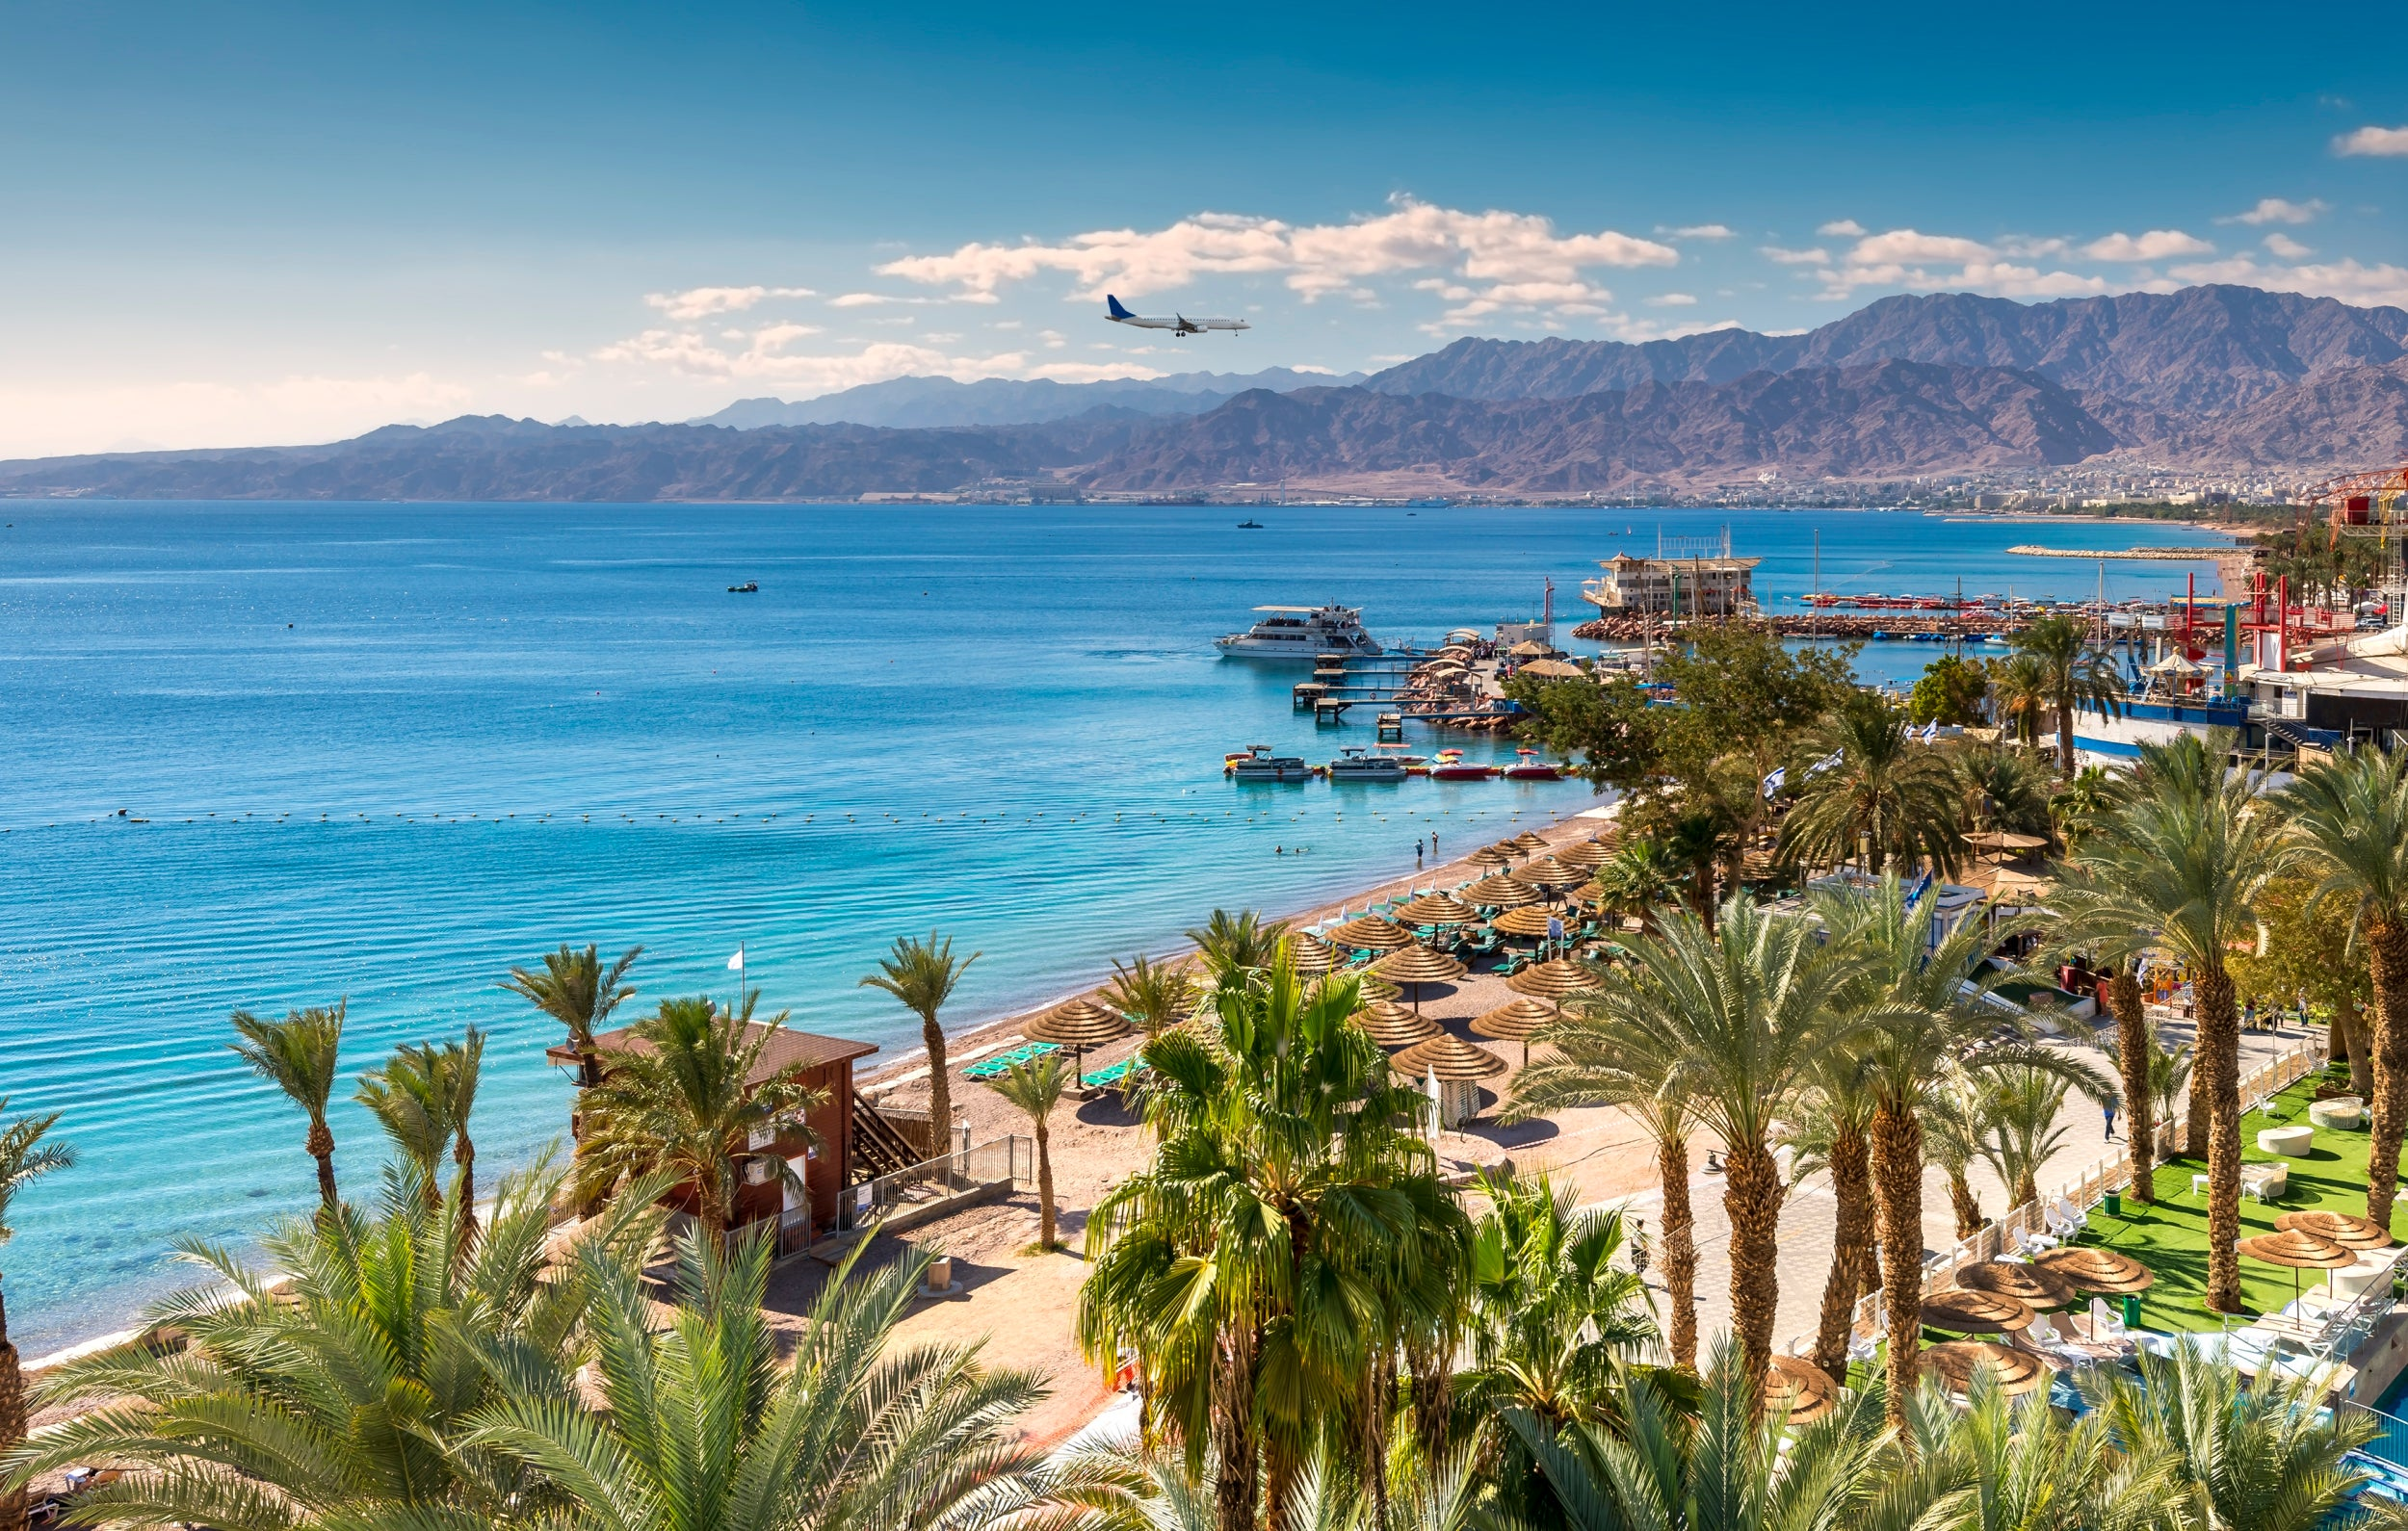 Eilat, Israel: A newly accessible Red Sea paradise